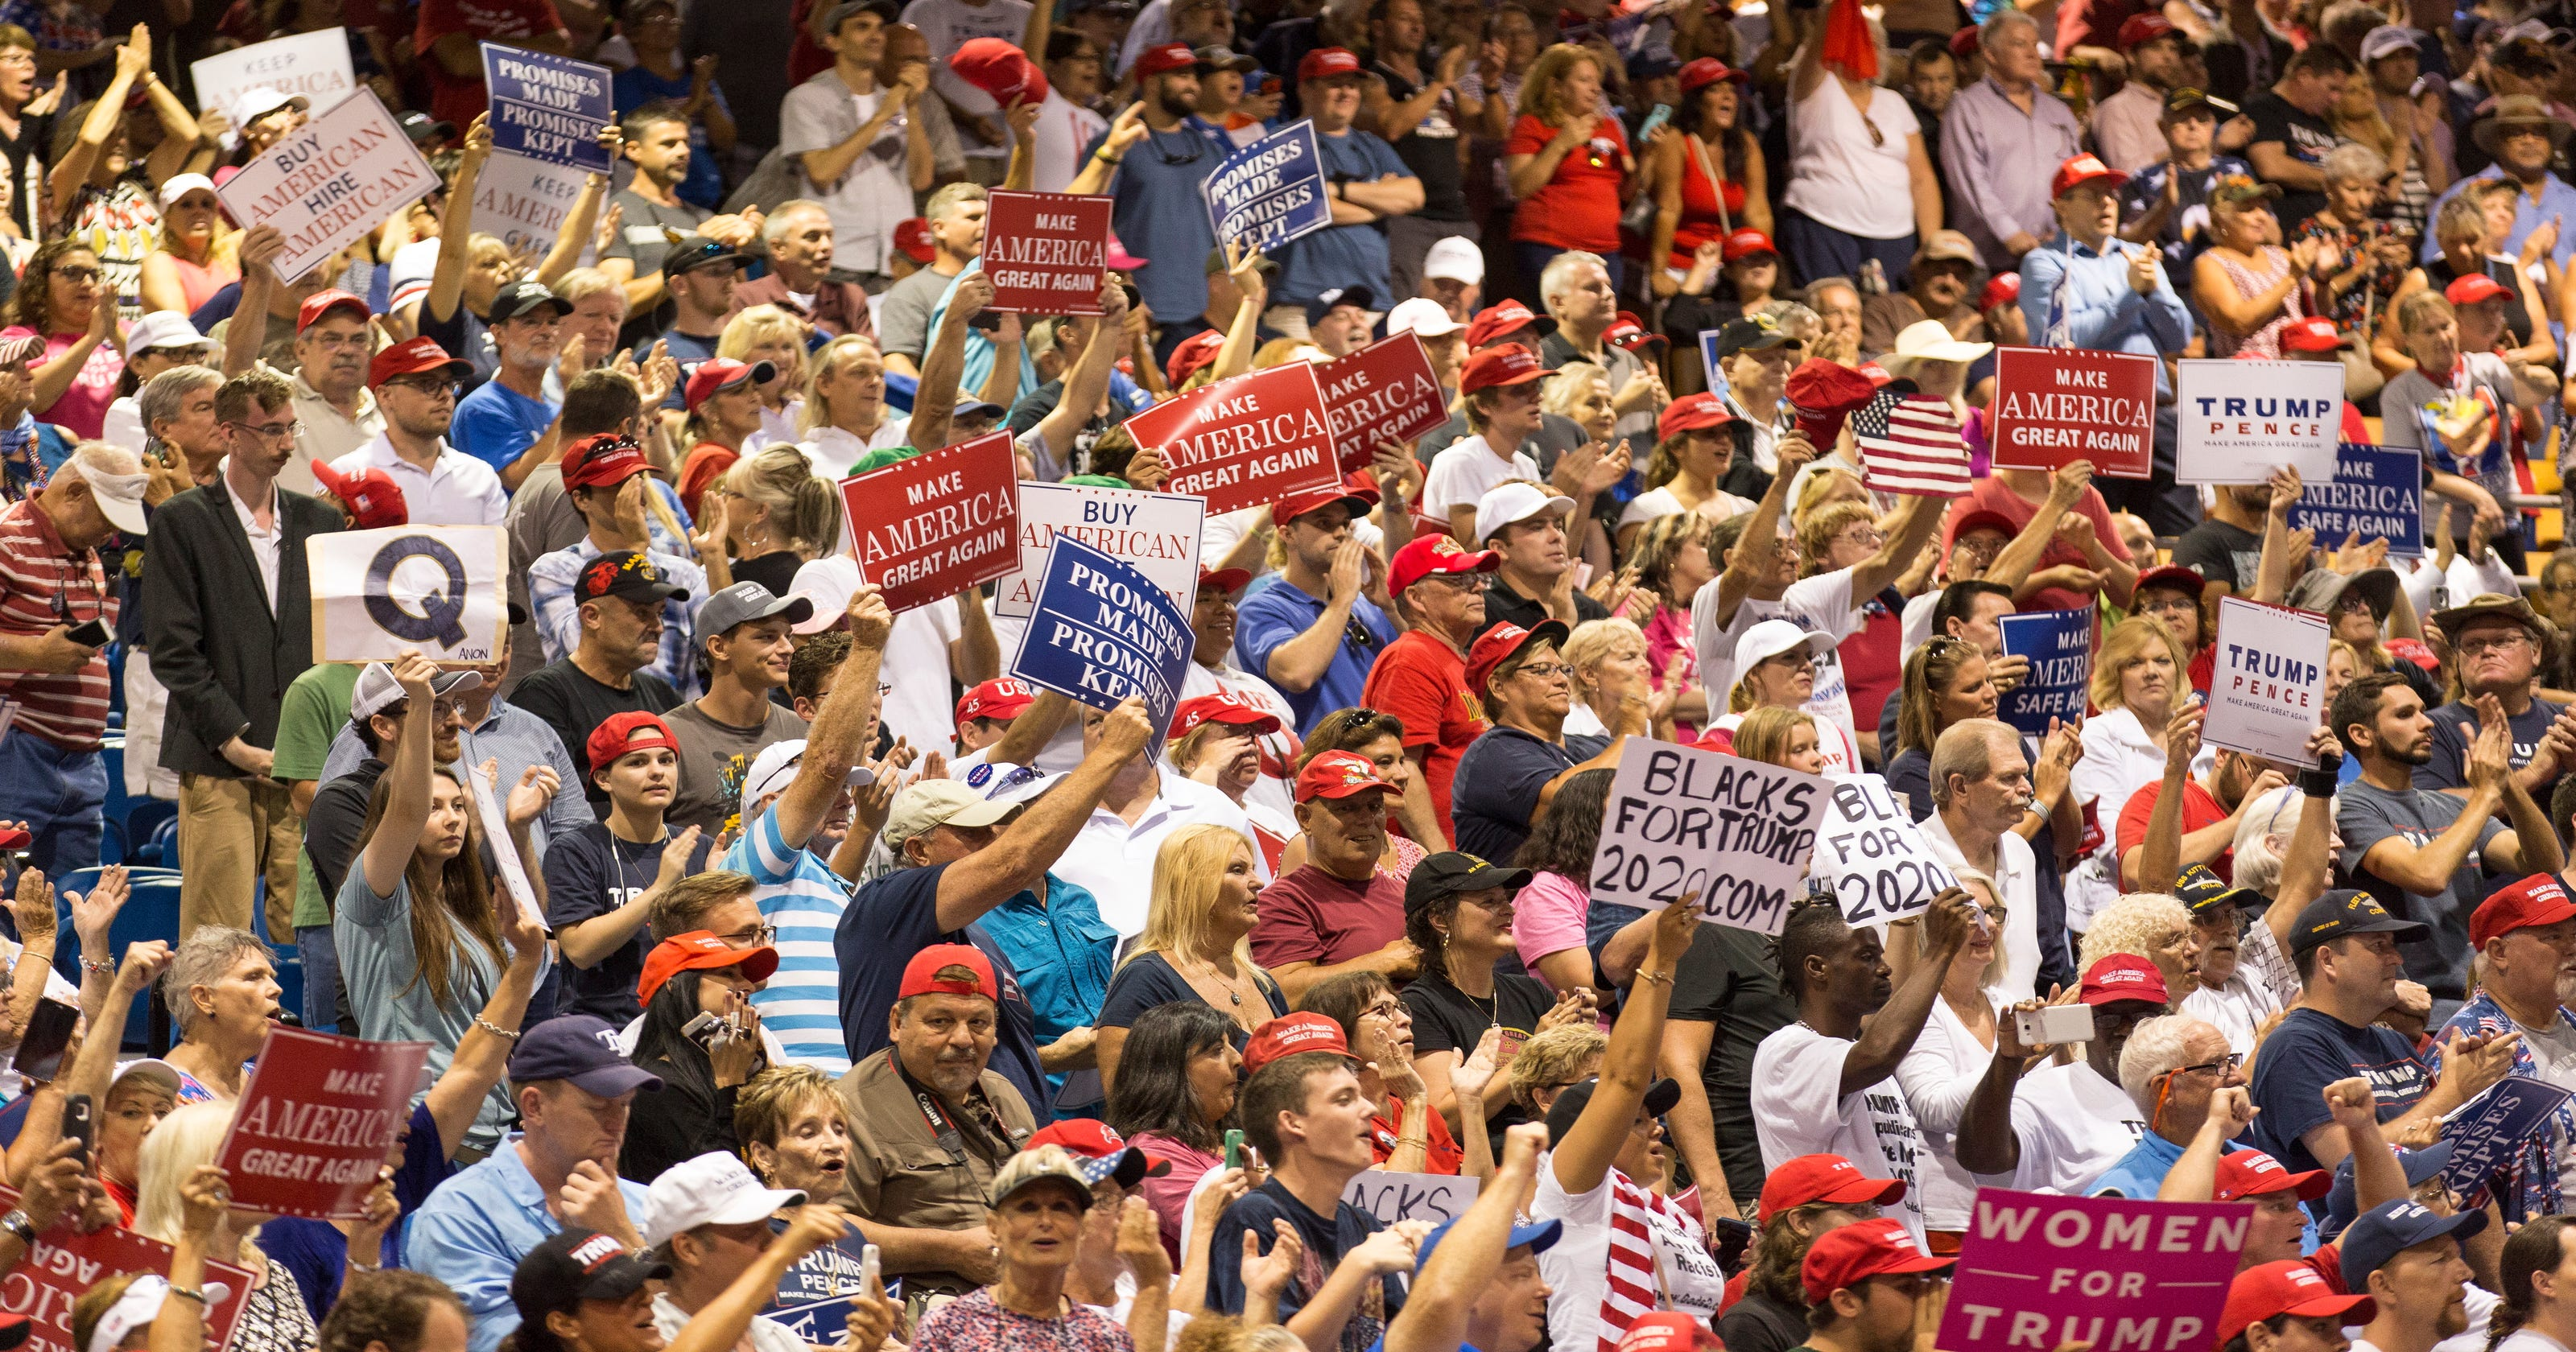 QAnon: The conspiracy theory explained, after Q posters spotted at Trump's Florida rally